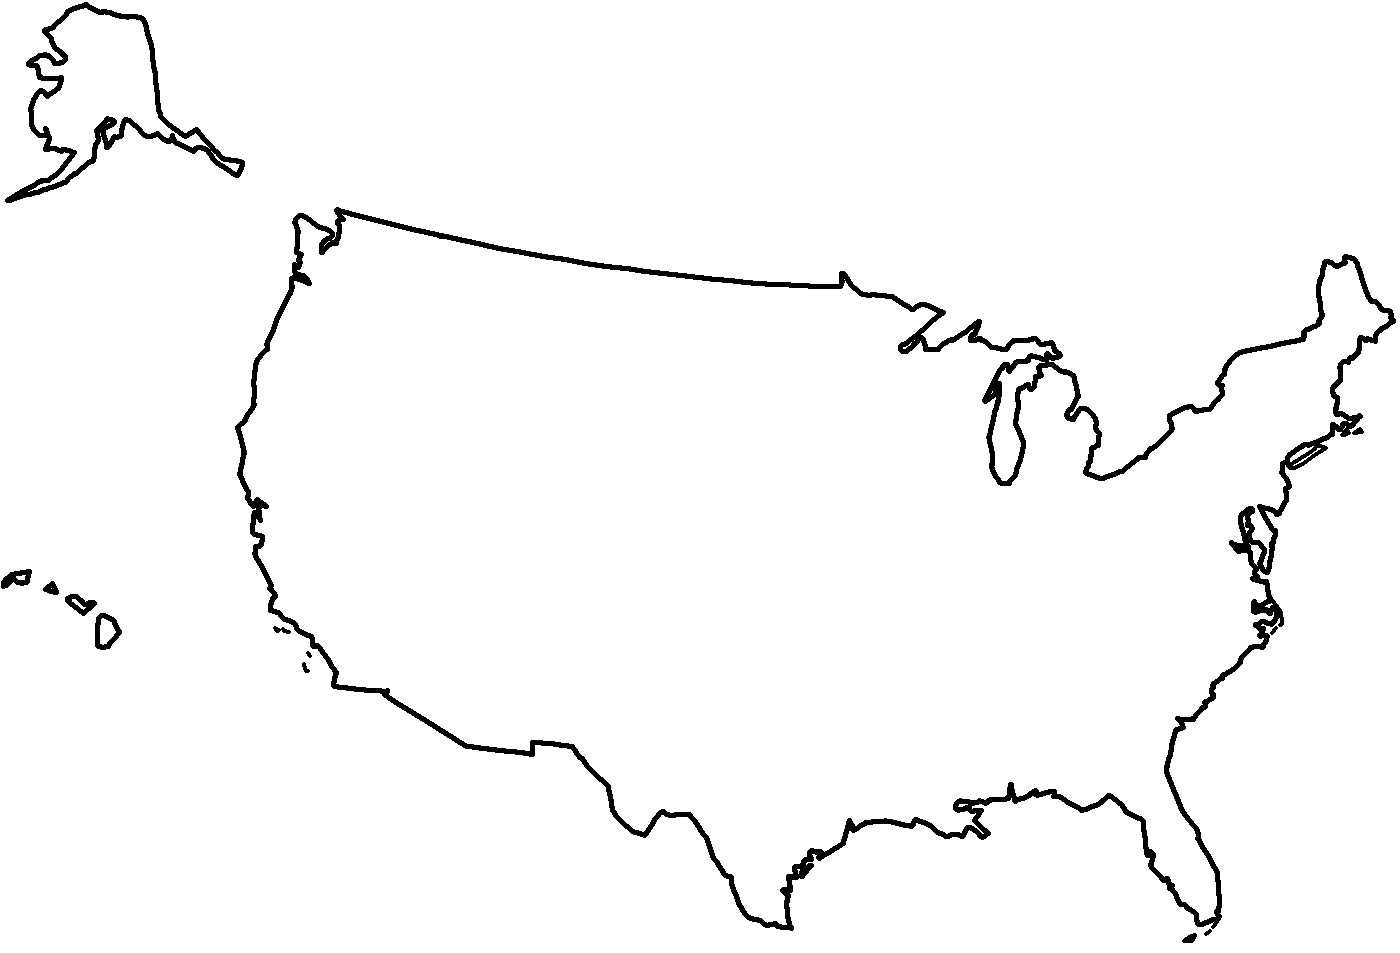 us state map coloring page us state map coloring page coloring us map page state